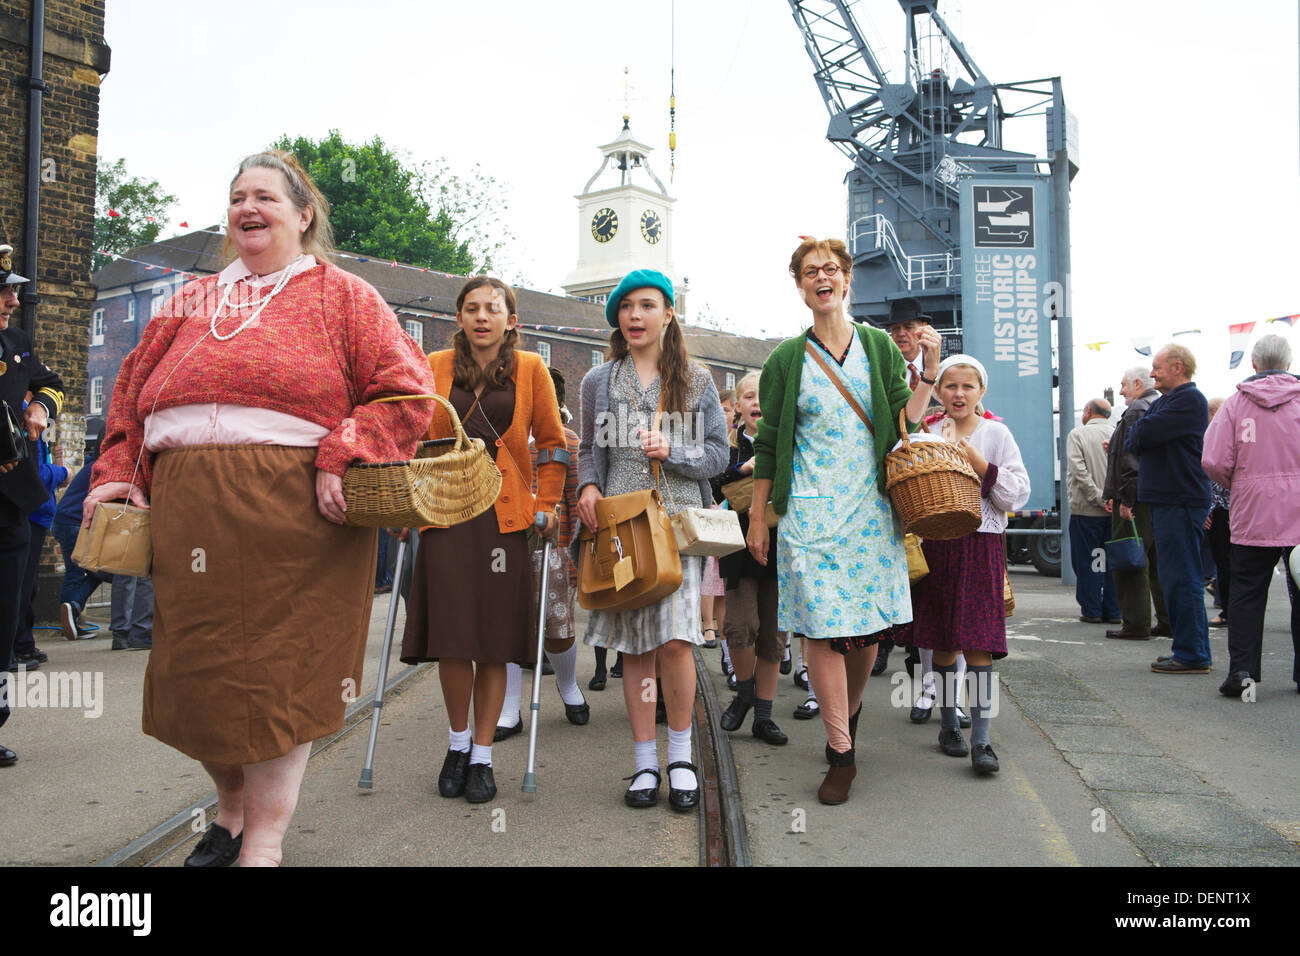 Chatham, UK. 21st Sep, 2013. Salute to the 40's - Britain's 1940's Home Front Event at The Historic Dockyard Chatham. Children dressed in 1940's clothes being evacuated to the country. Credit:  Tony Farrugia/Alamy Live News - Stock Image